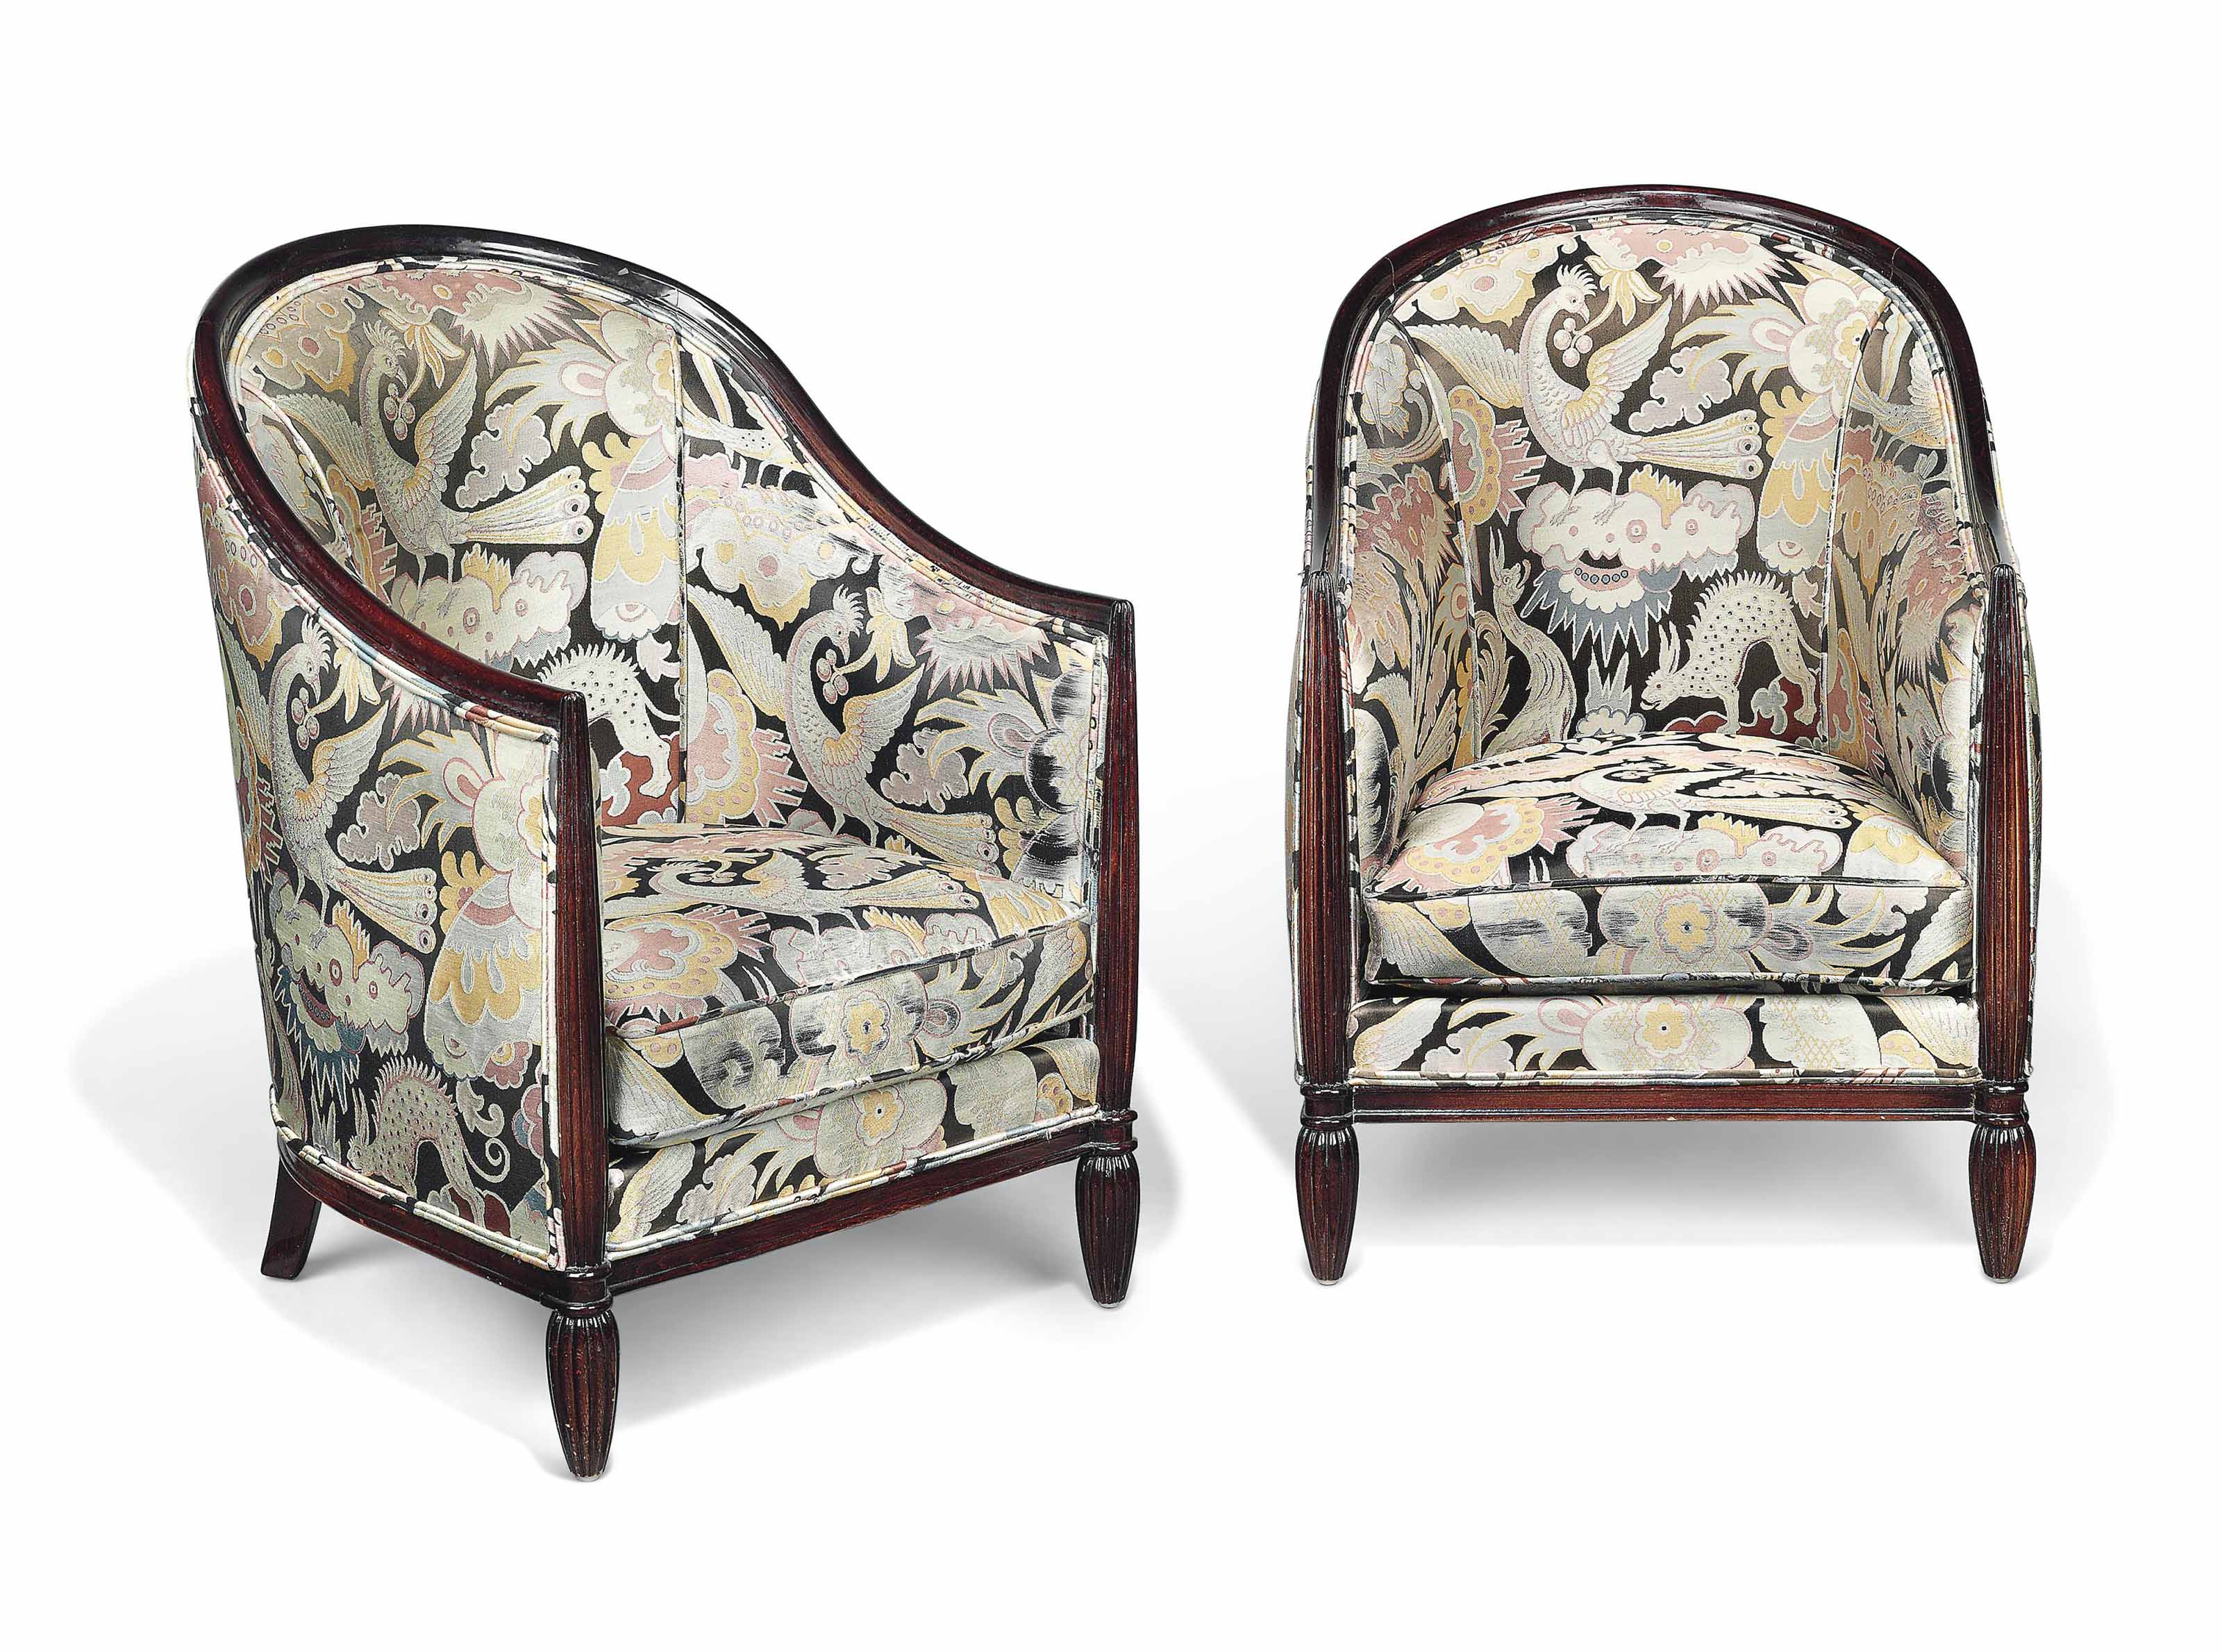 A PAIR OF ART DECO STAINED BEECH AND UPHOLSTERED ARMCHAIRS IN THE MANNER OF PAUL FOLLOT